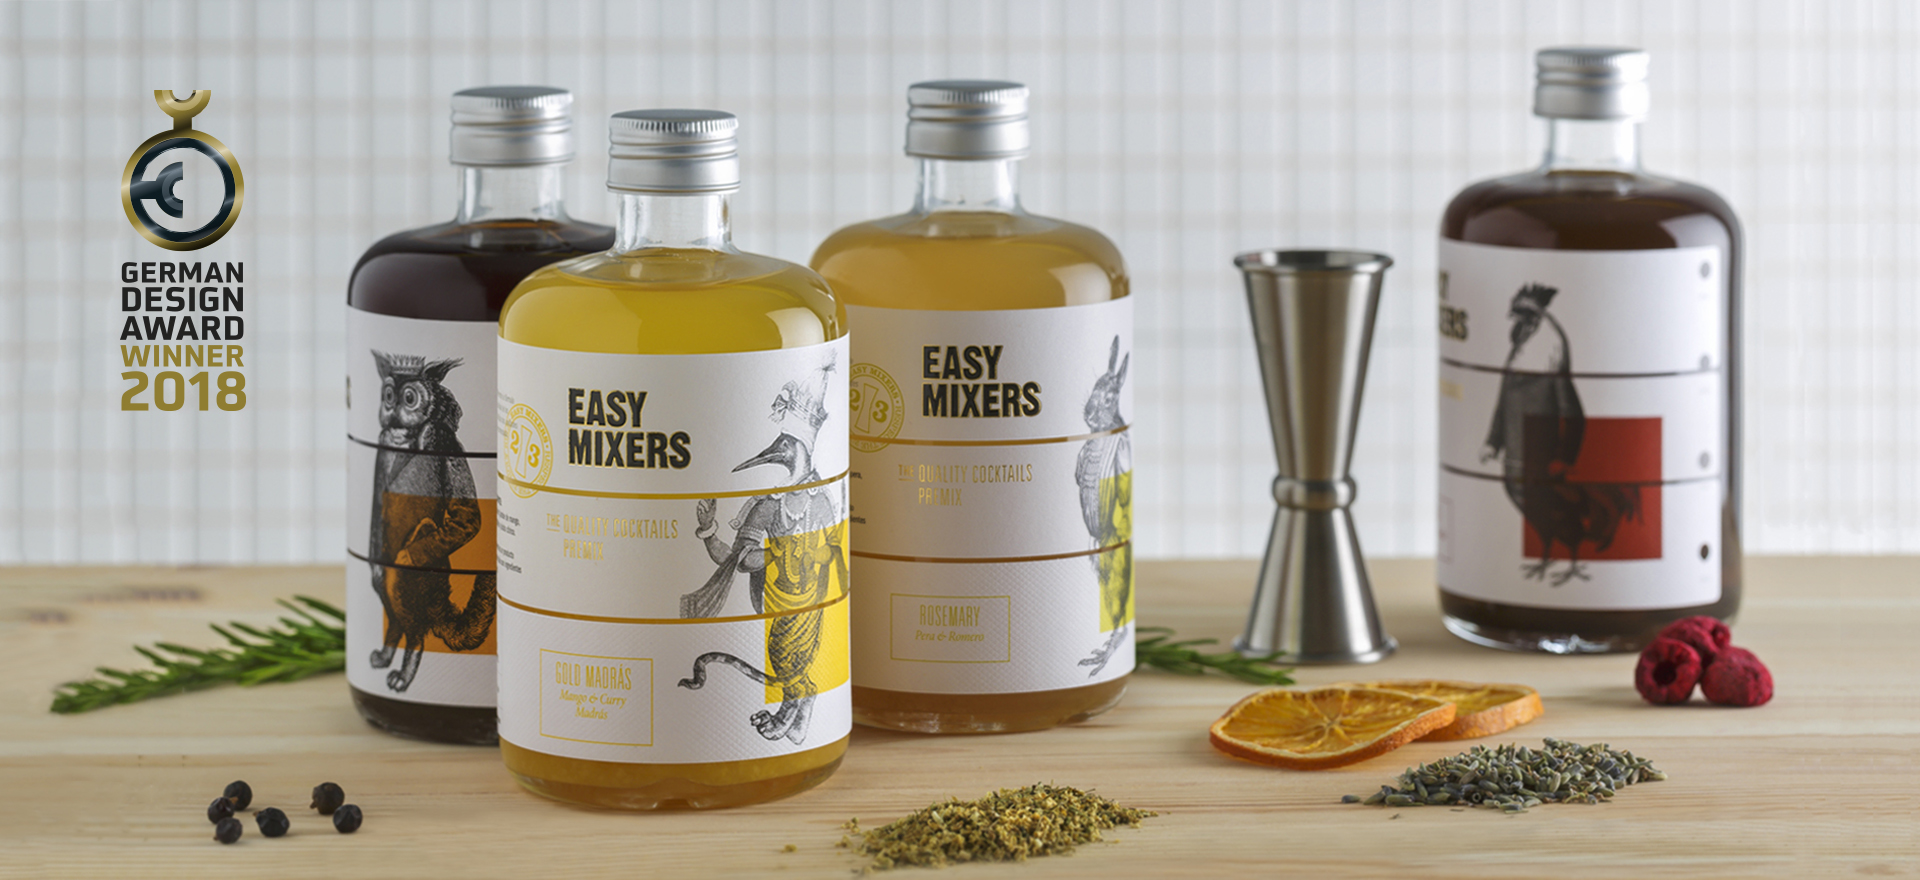 EASY MIXERS - https://www.easymixers.com/